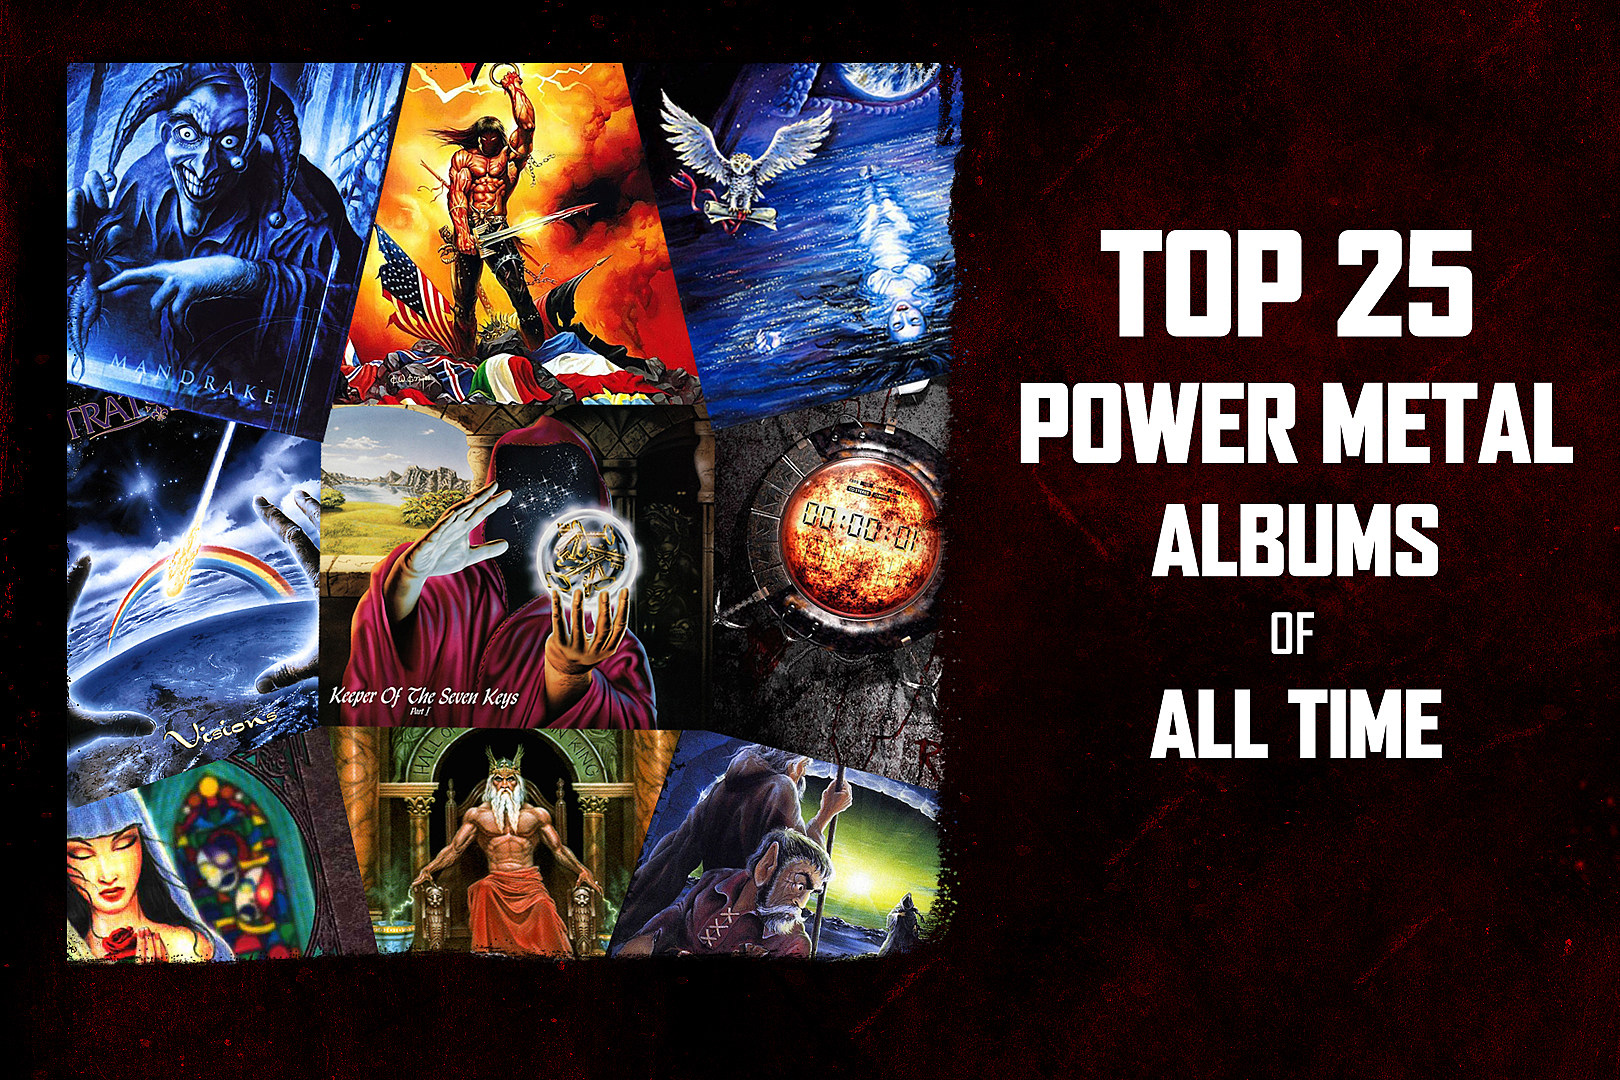 Top 25 Power Metal Albums of All Time